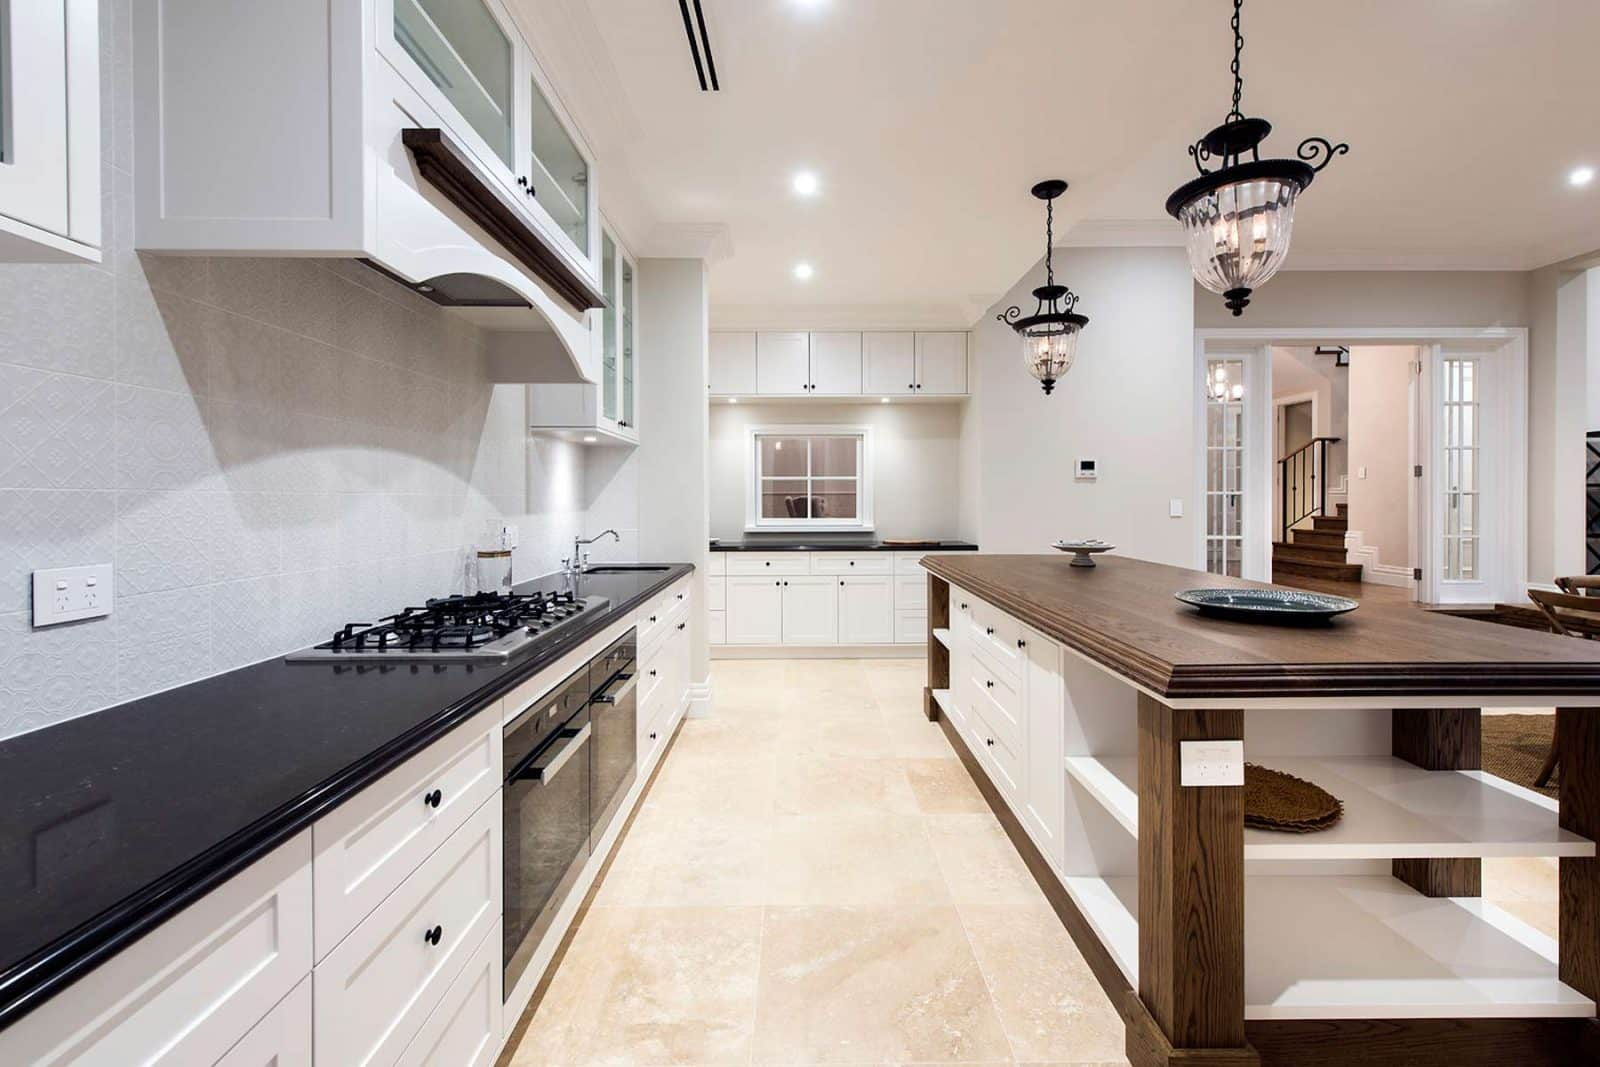 Cabinet Makers Perth | Award Winning Kitchens - Colray Cabinets ...